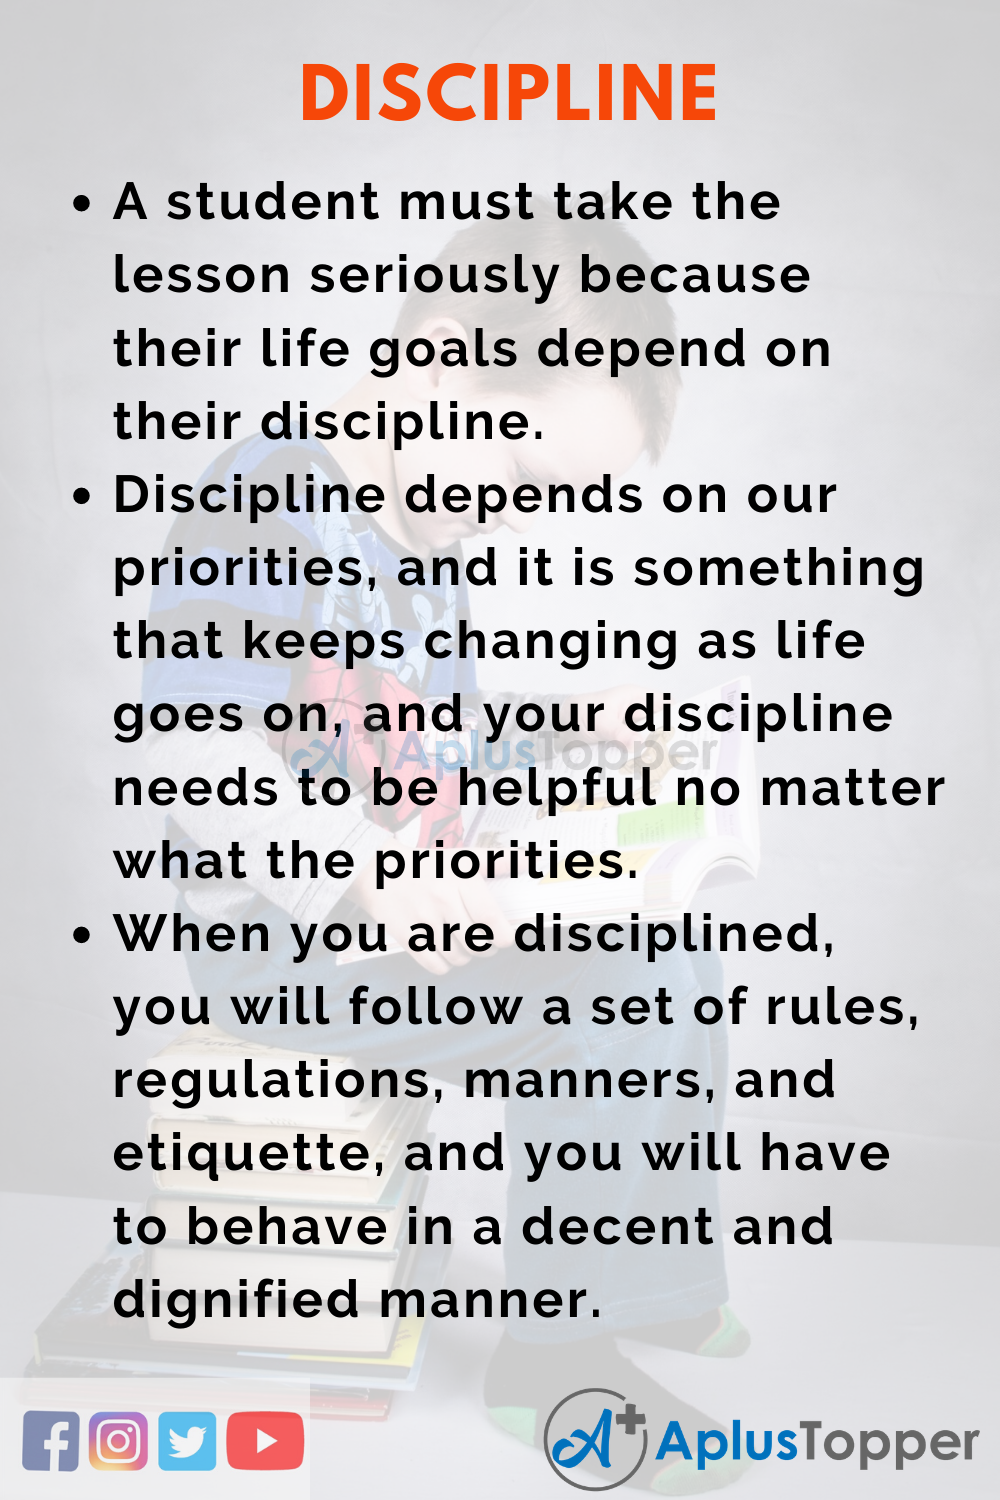 10 Lines on Discipline for Higher Class Students